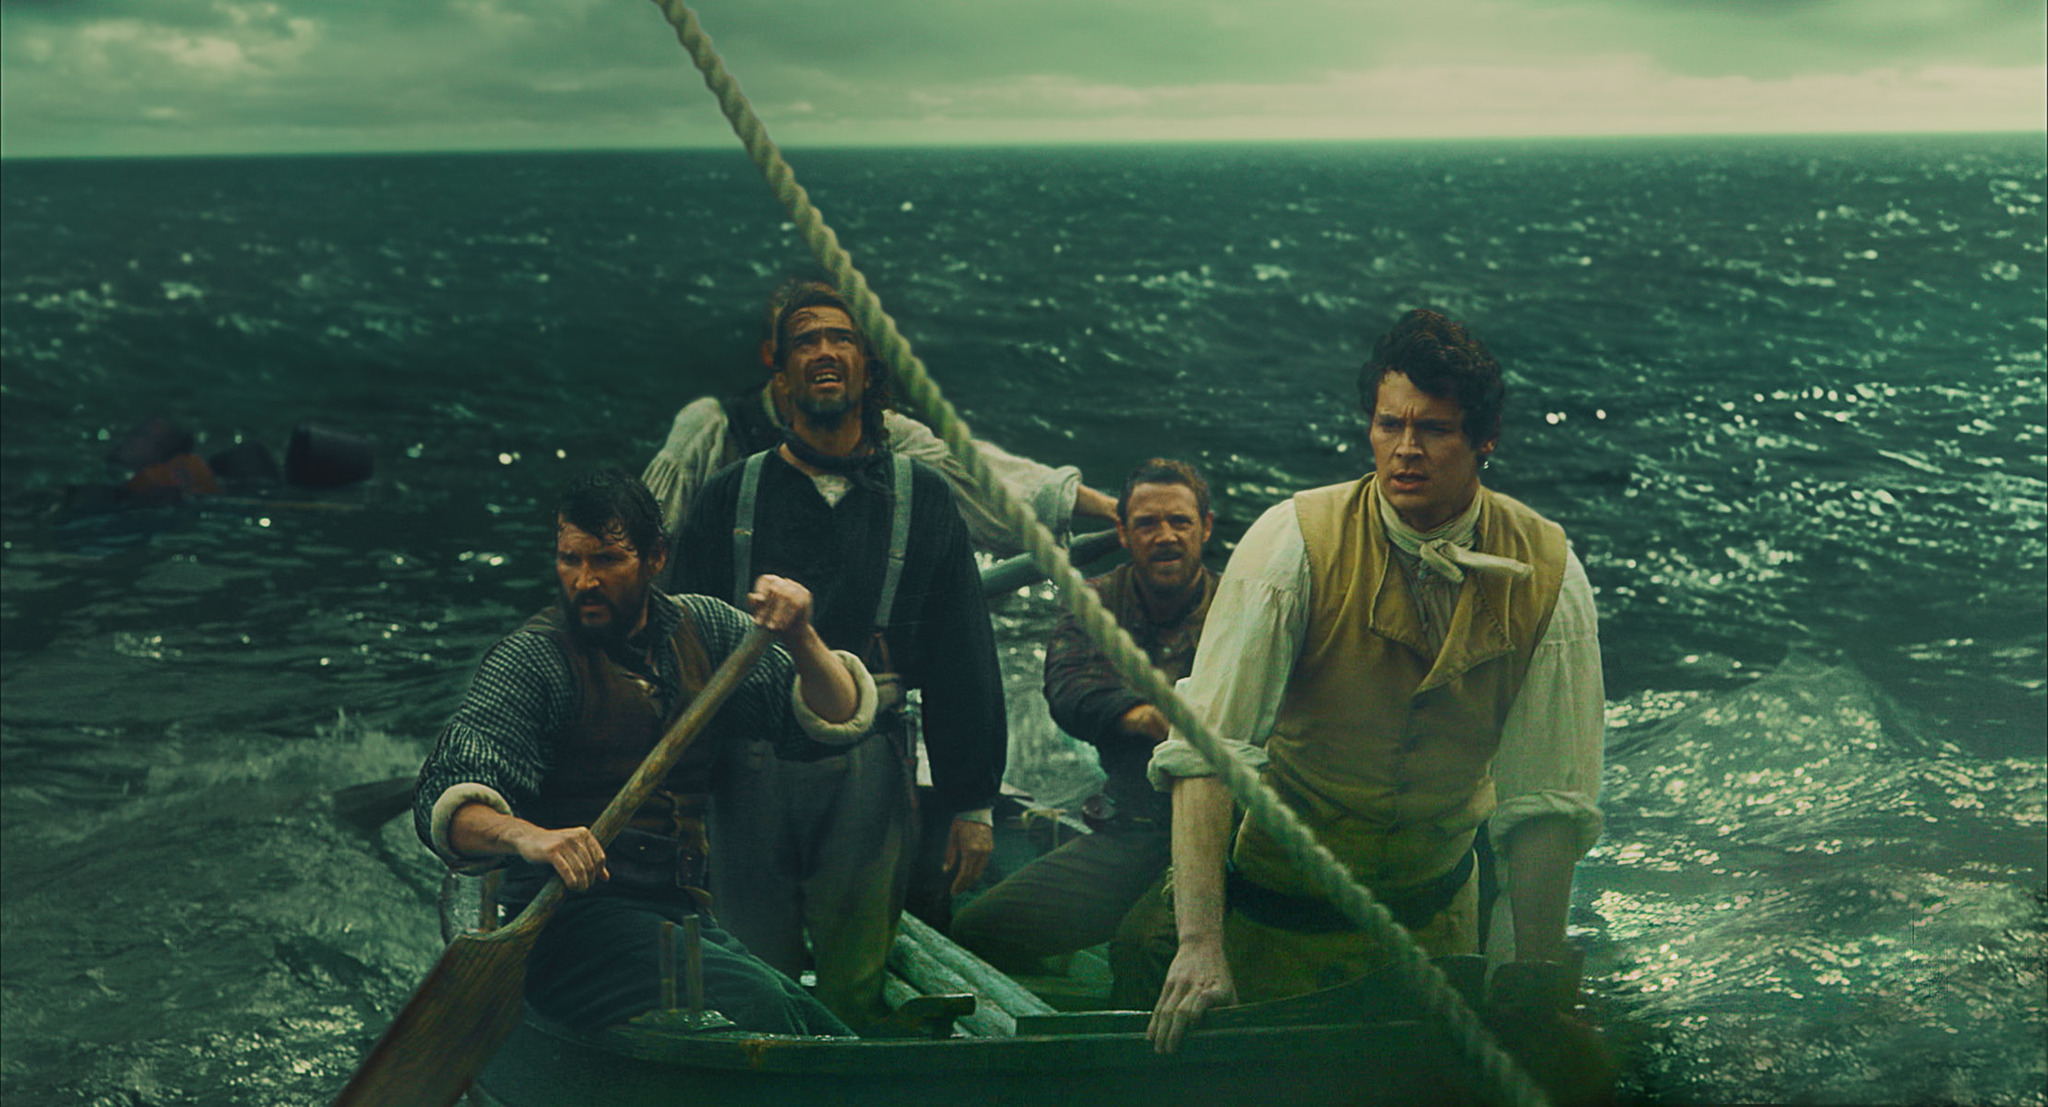 Benjamin Walker and Victor Solé in In the Heart of the Sea (2015)